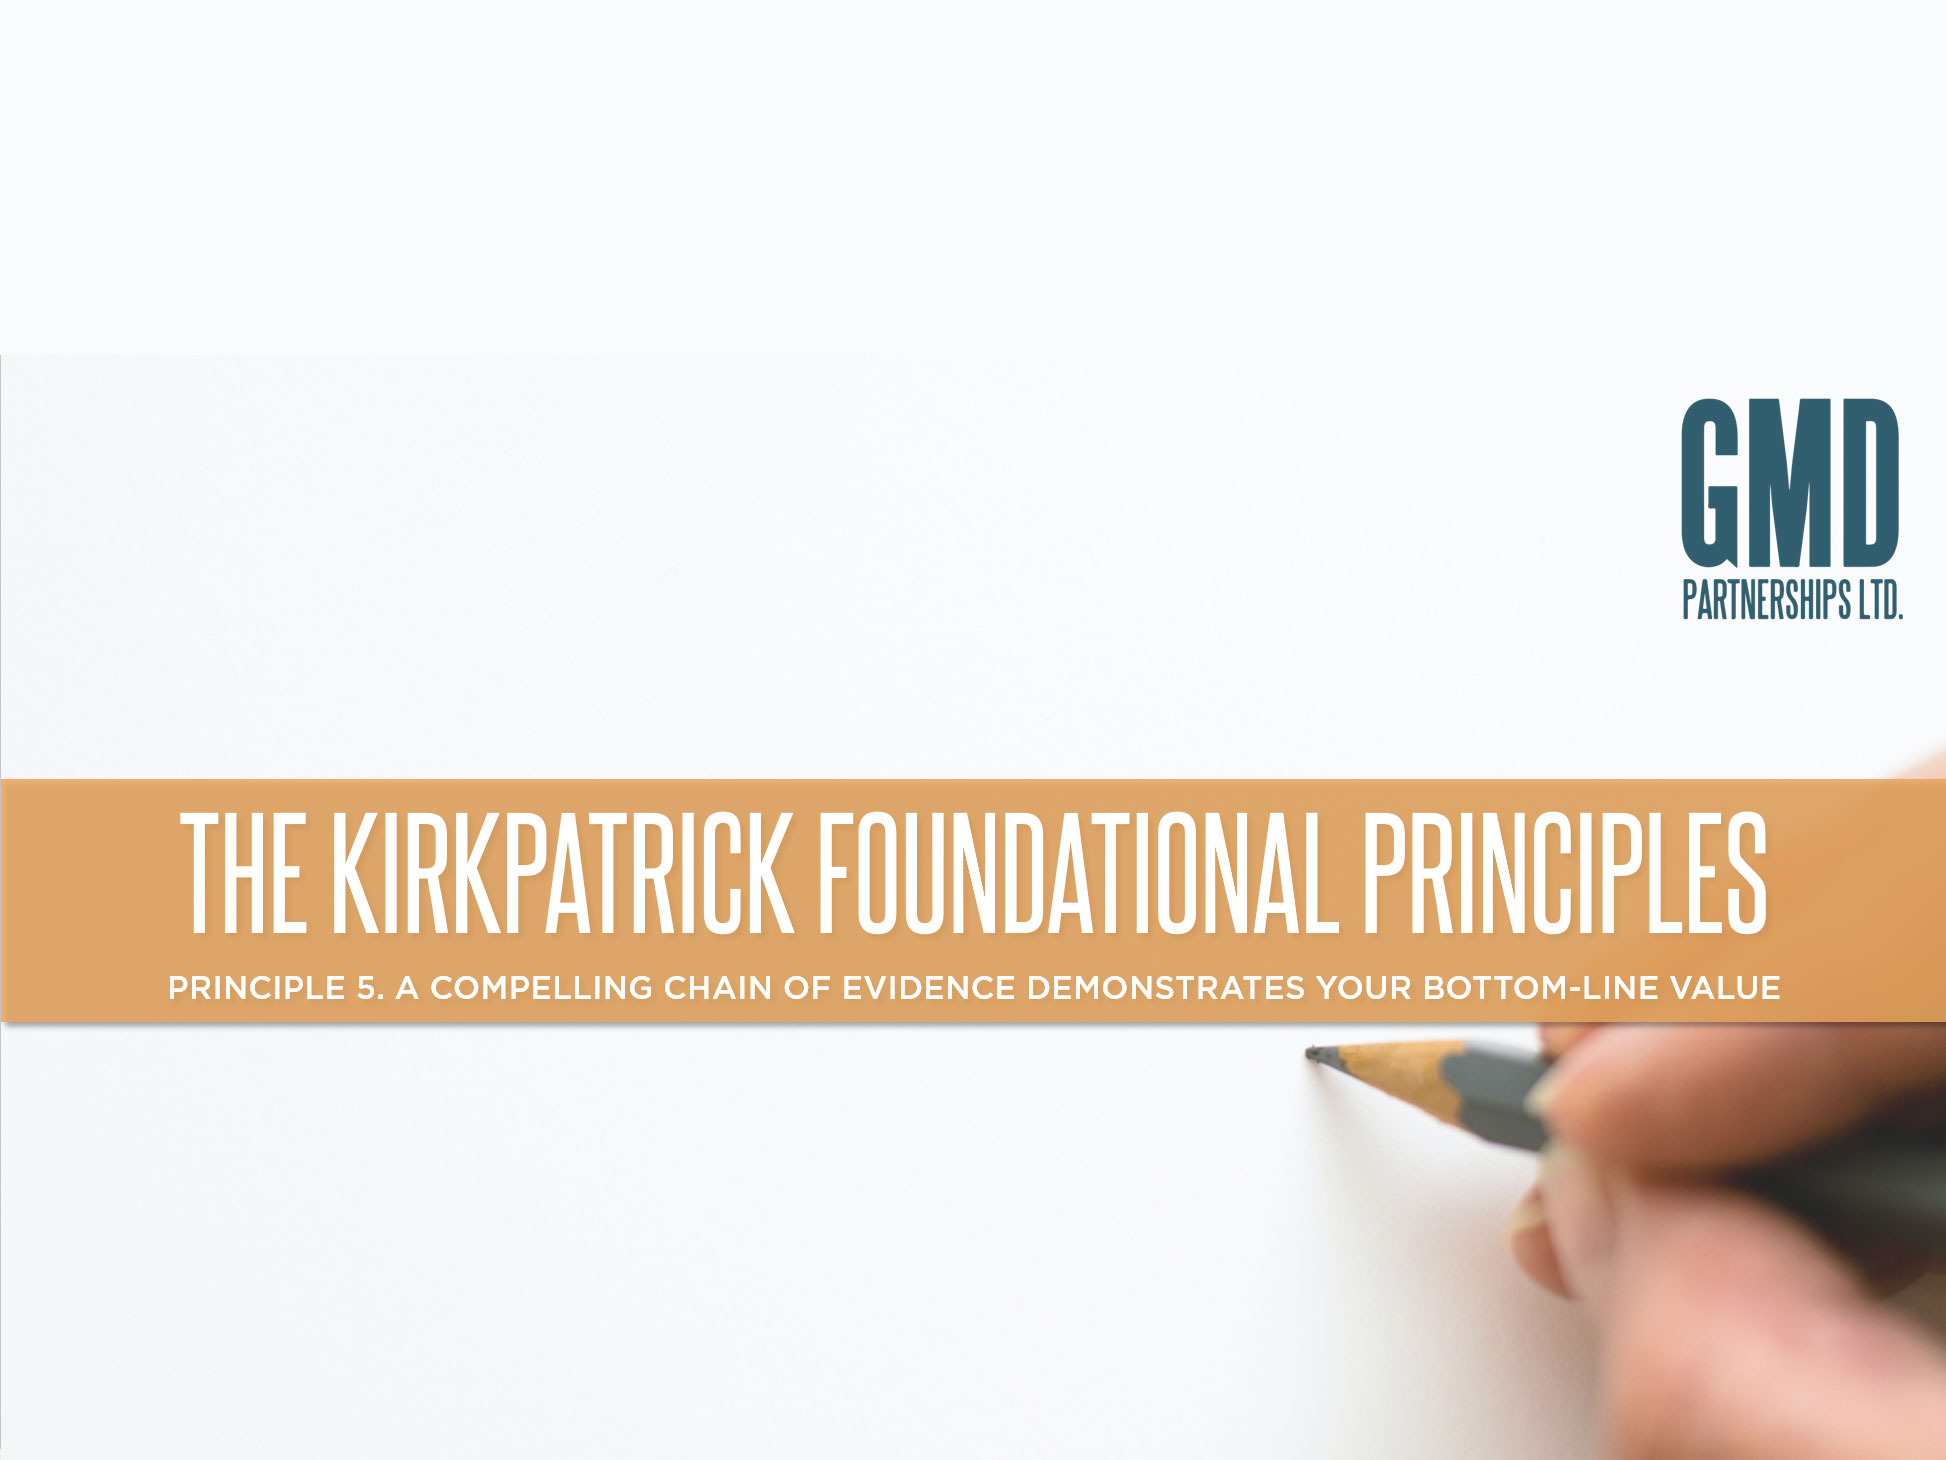 Kirkpatrick Principle 5. A compelling chain of evidence demonstrates your bottom-line value